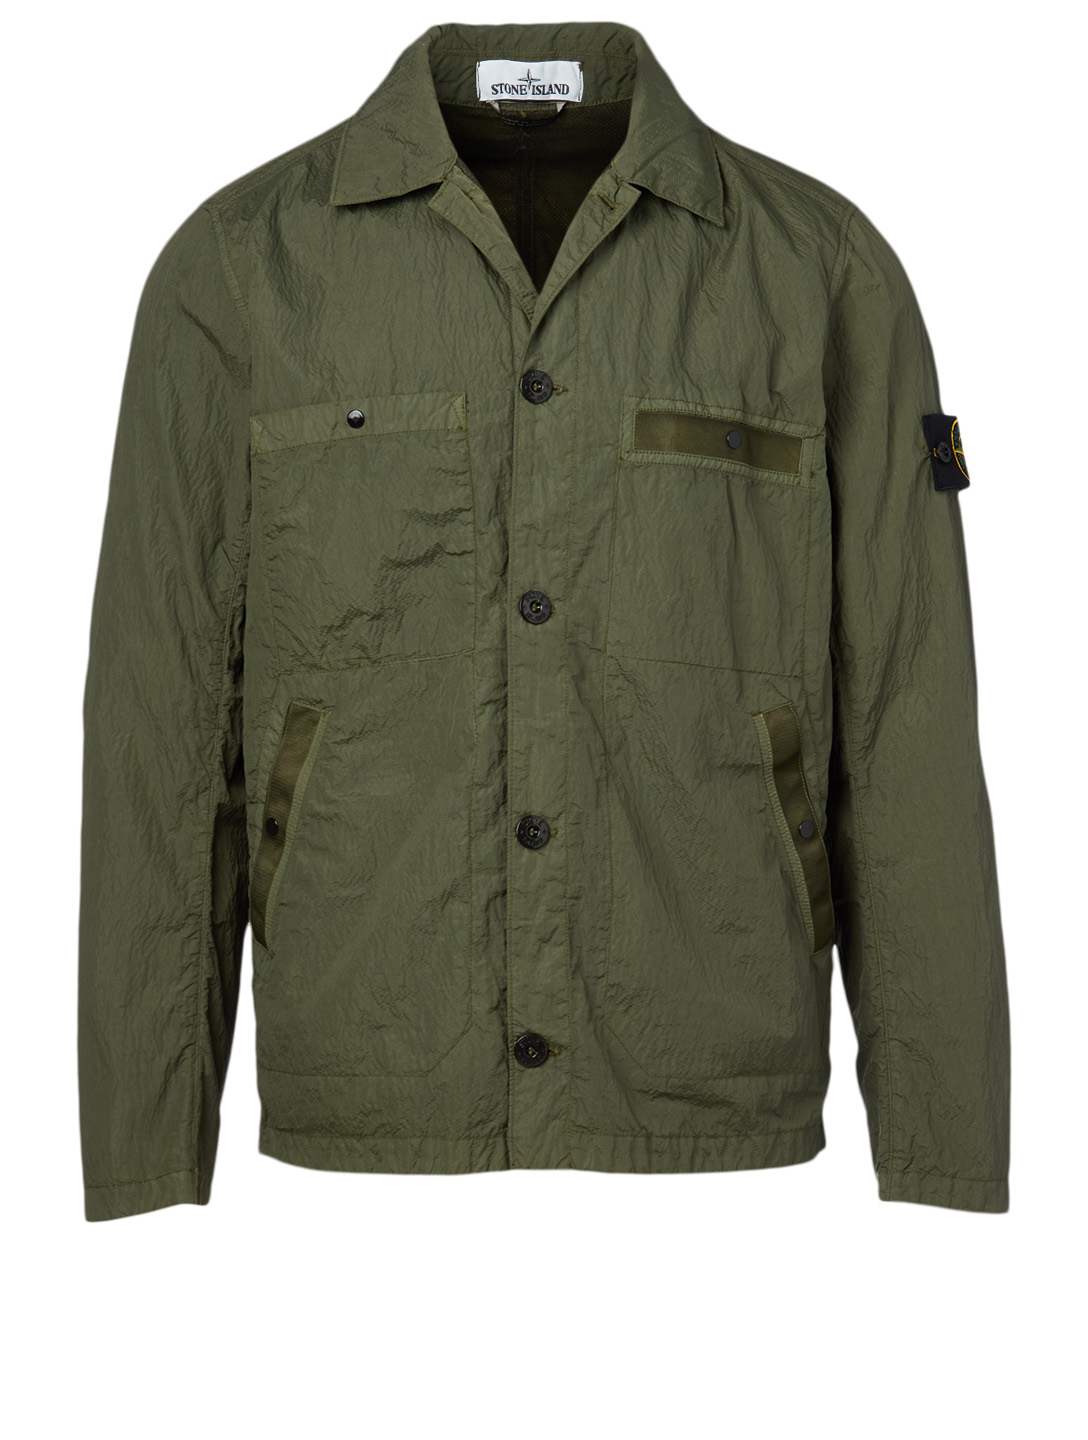 STONE ISLAND Shirt Jacket Men's Green